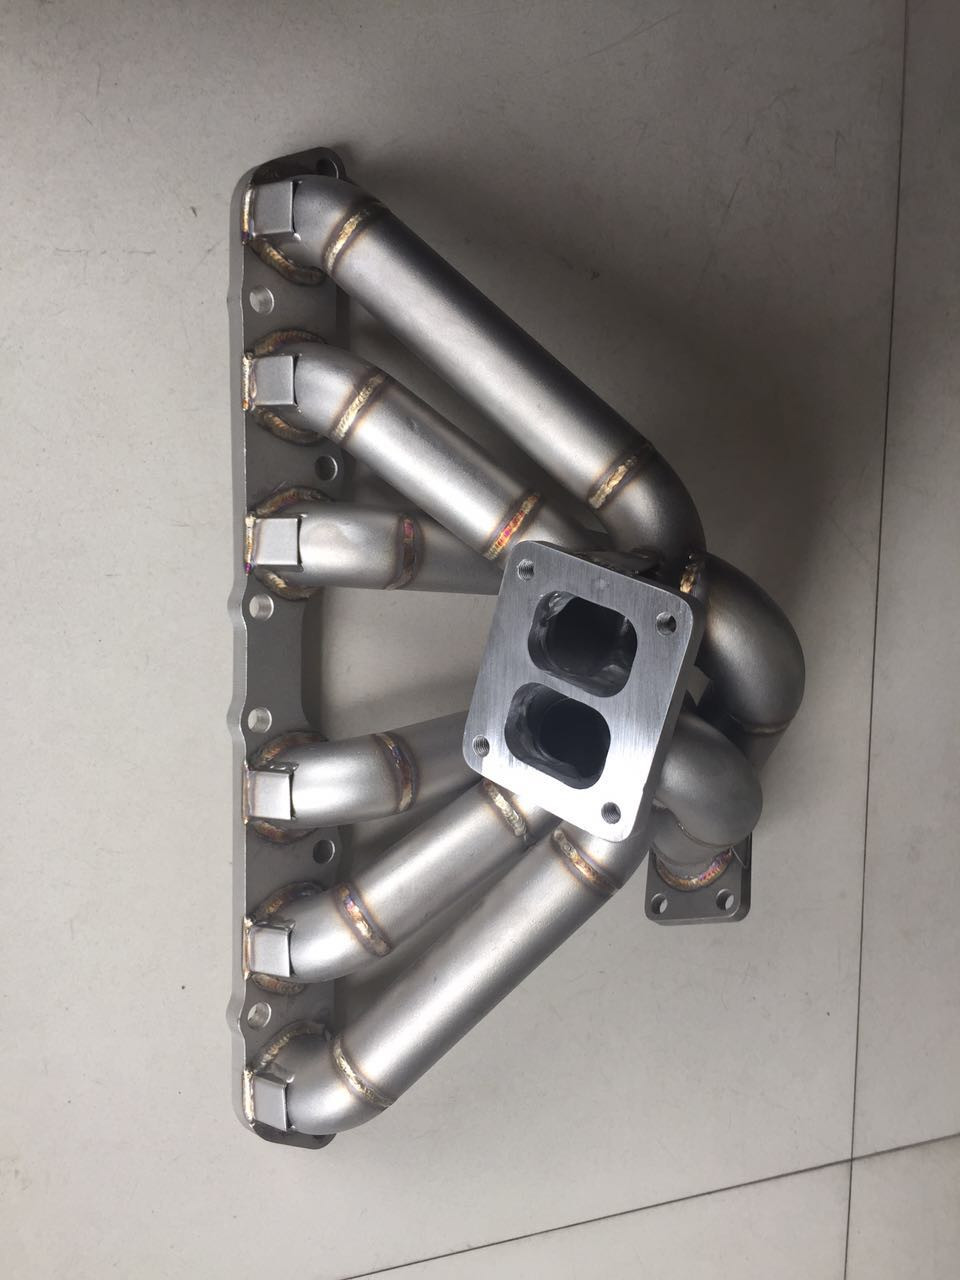 DUAL SCROLL T4 Top Mount Turbo Manifold 1JZGTE 1JZ-GTE 1JZ GS300 SC300  Supra MK3